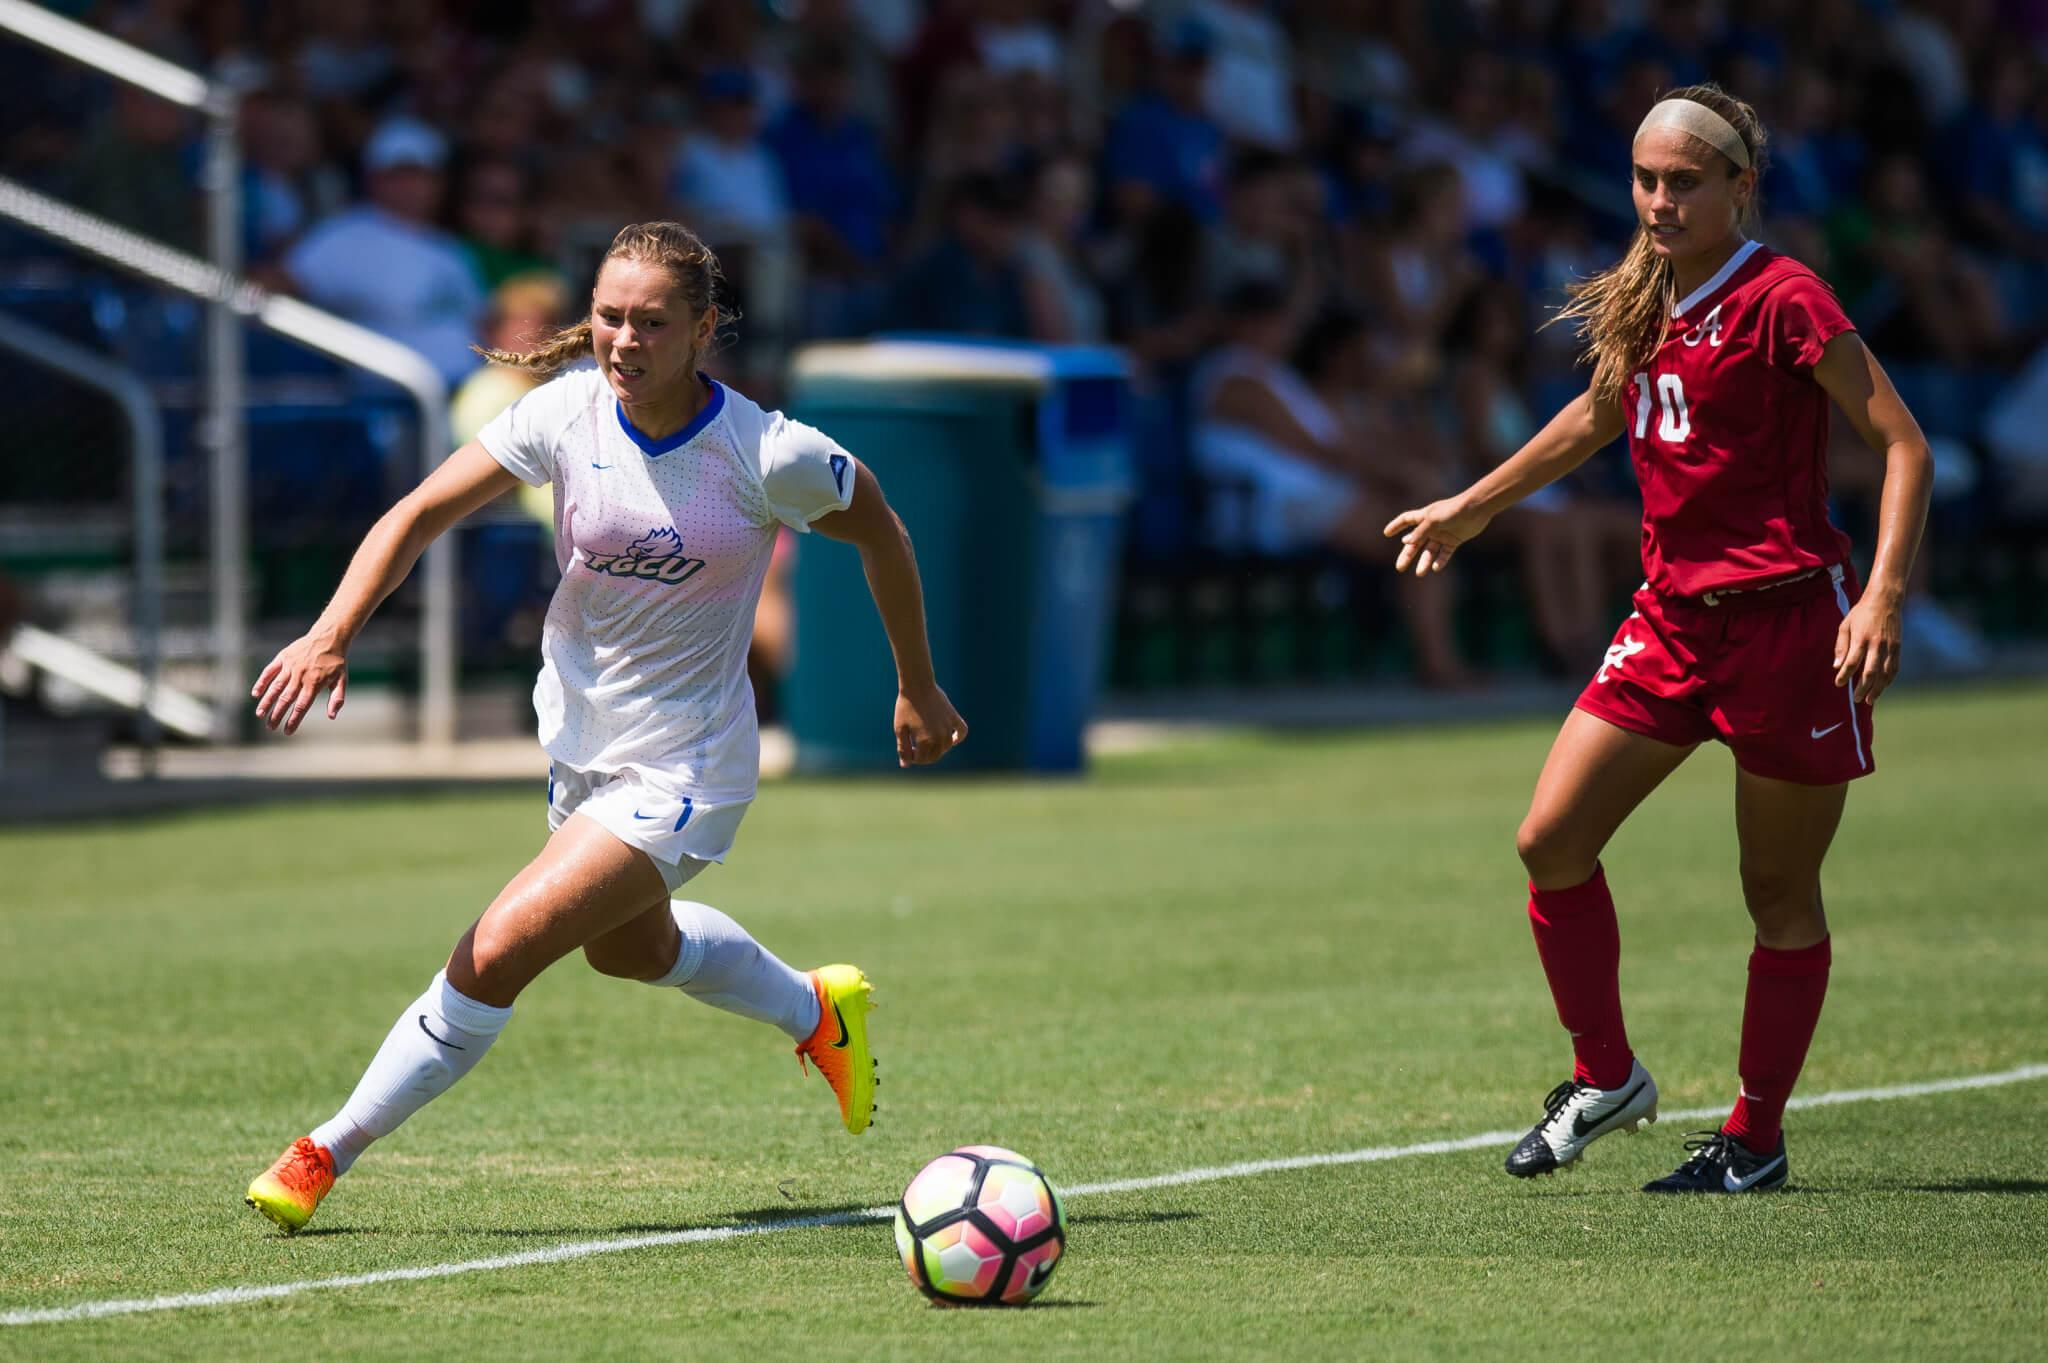 Preview: FGCU women's soccer vs. USC Upstate